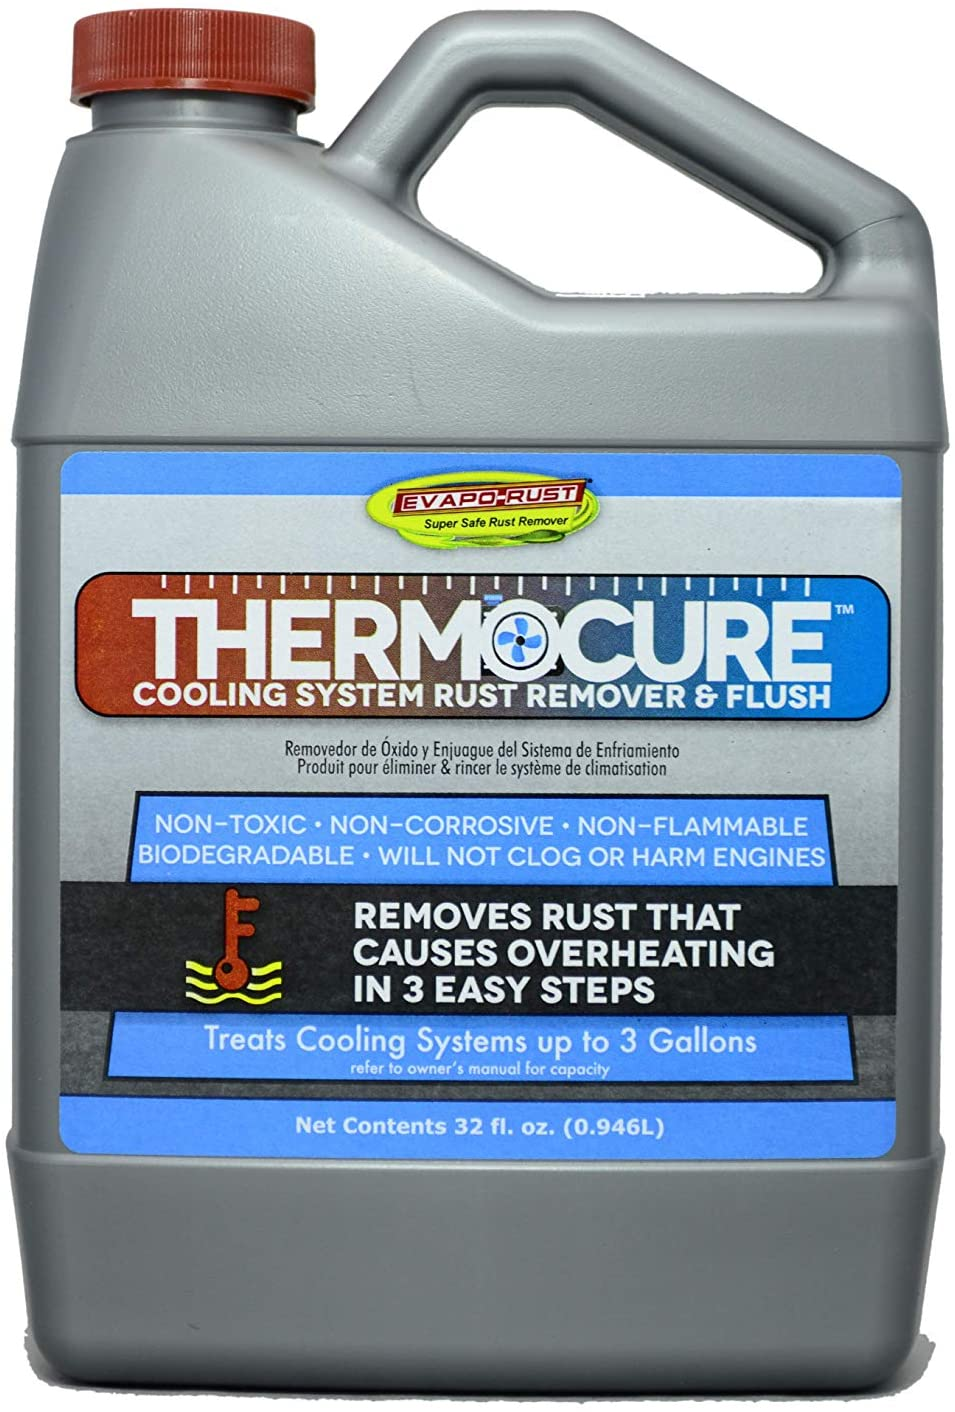 Thermocure Coolant System Rust Remover}